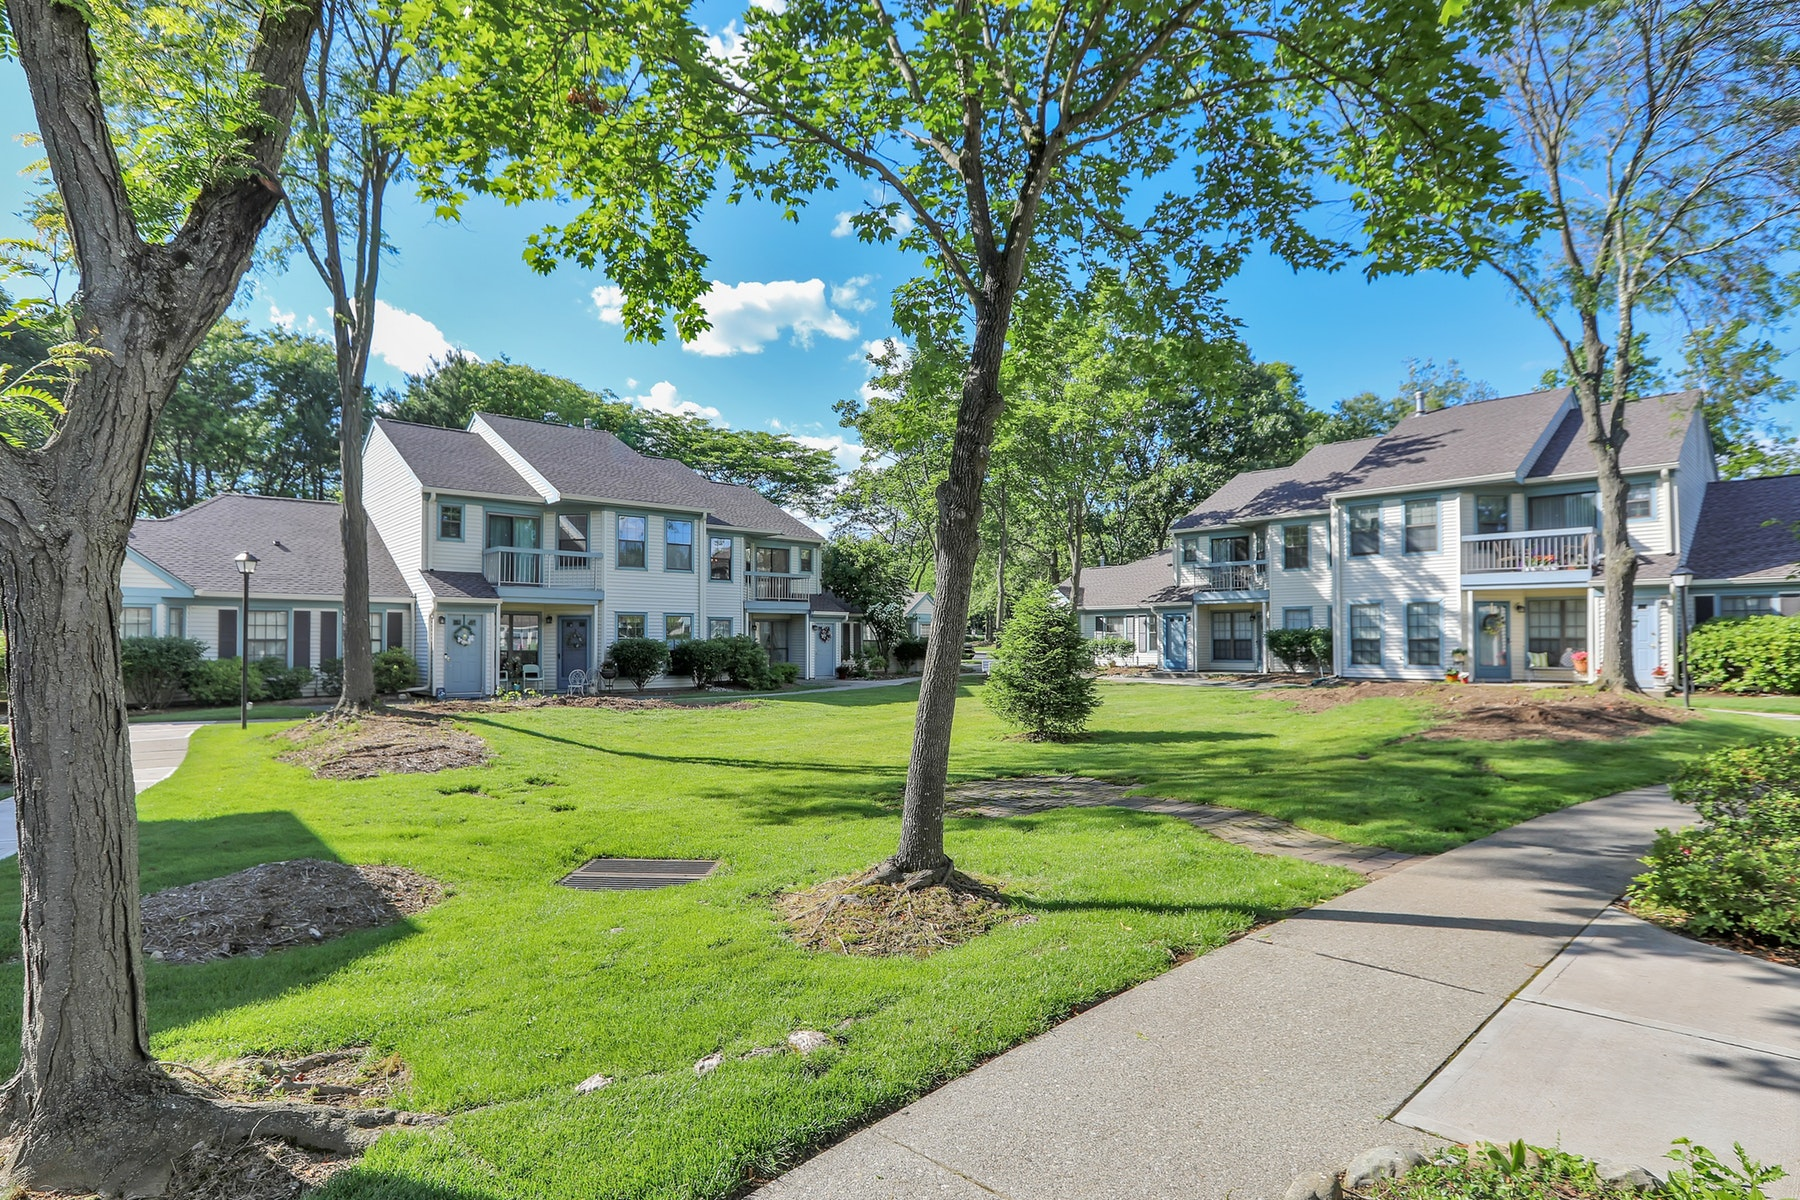 Condominiums for Sale at Pond Meadows End Unit 18 Eakens Court Pond Meadows Mahwah, New Jersey 07430 United States